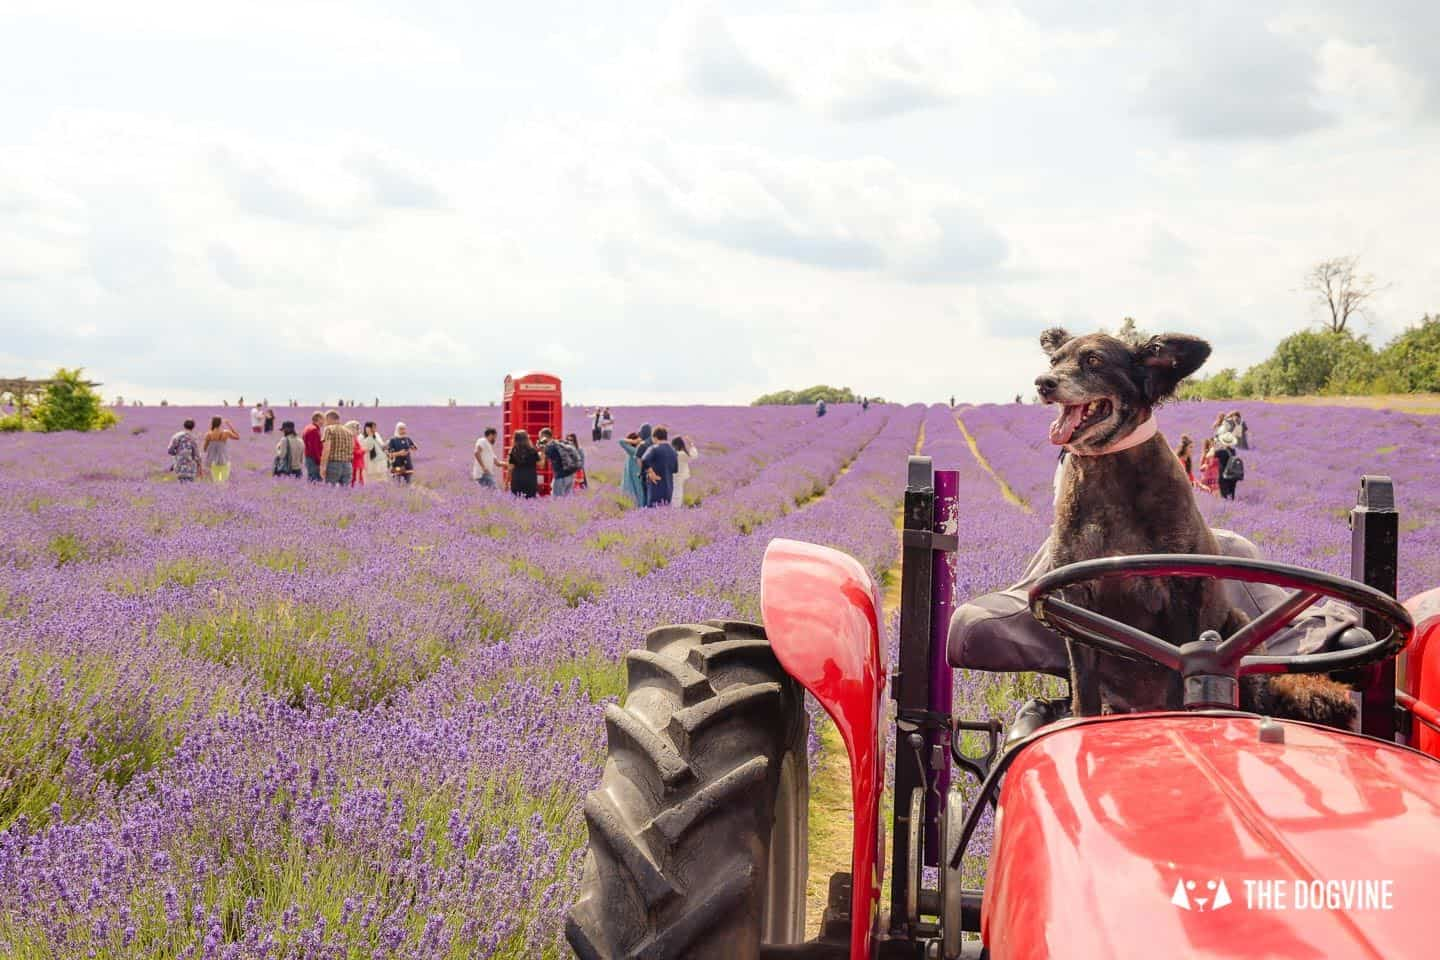 Dog-friendly Mayfield Lavender Farm - Belinha on the tractor